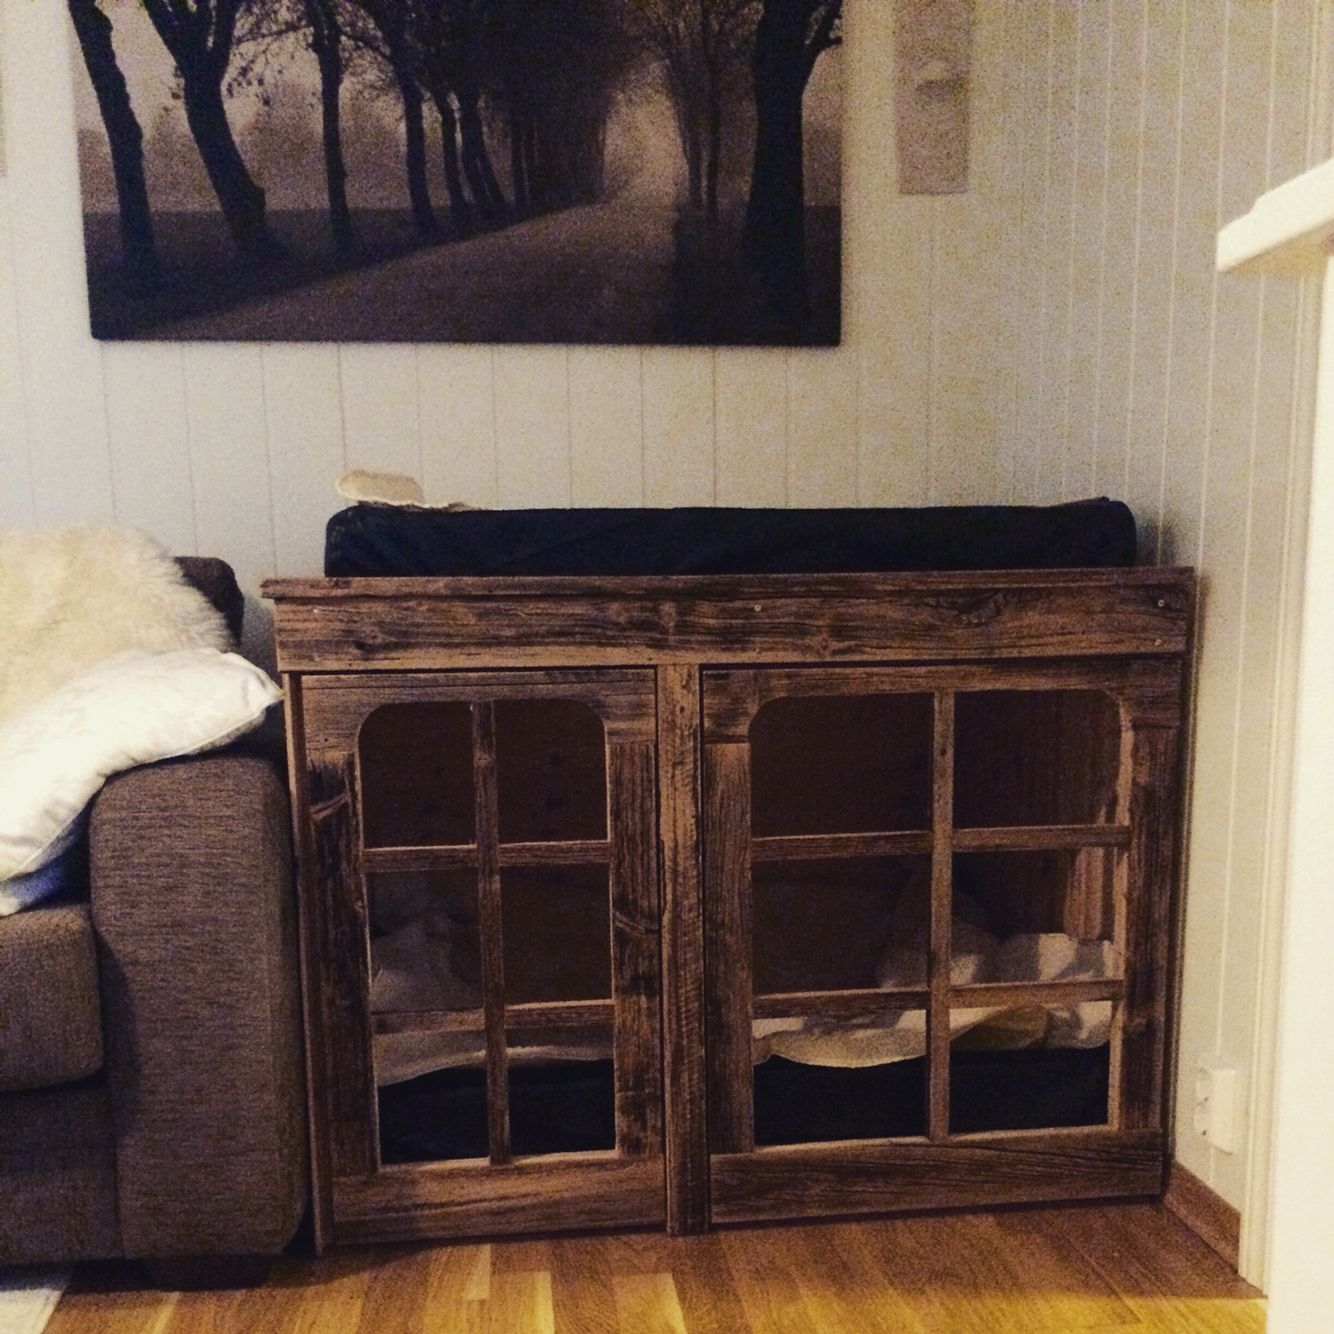 Our dogcrate Clever Crafts Pinterest Crafts